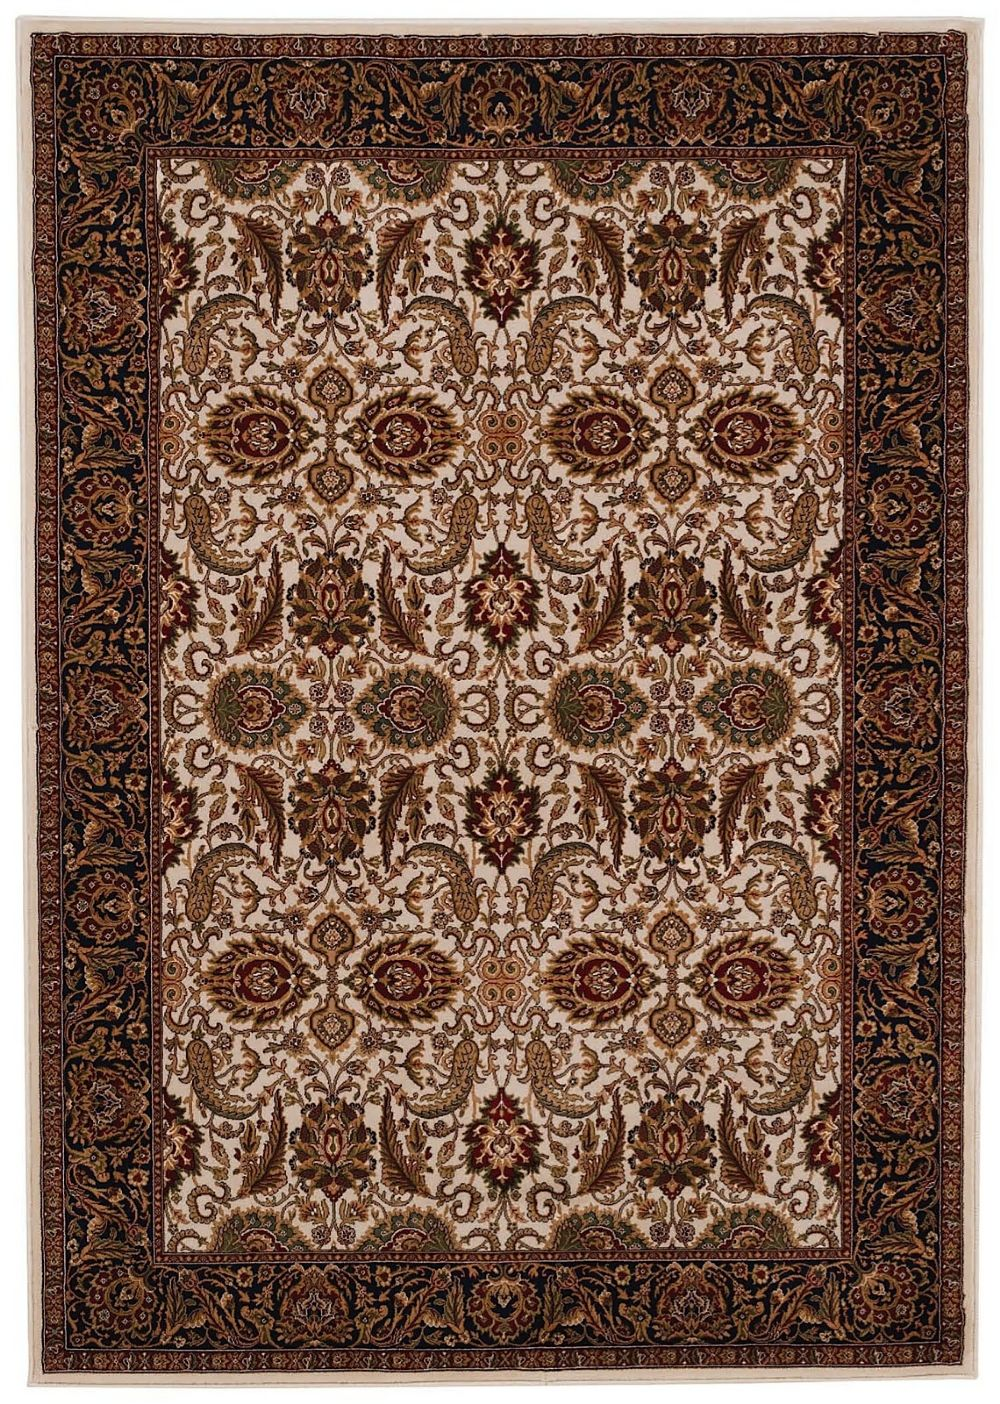 capel belmont-meshed traditional area rug collection